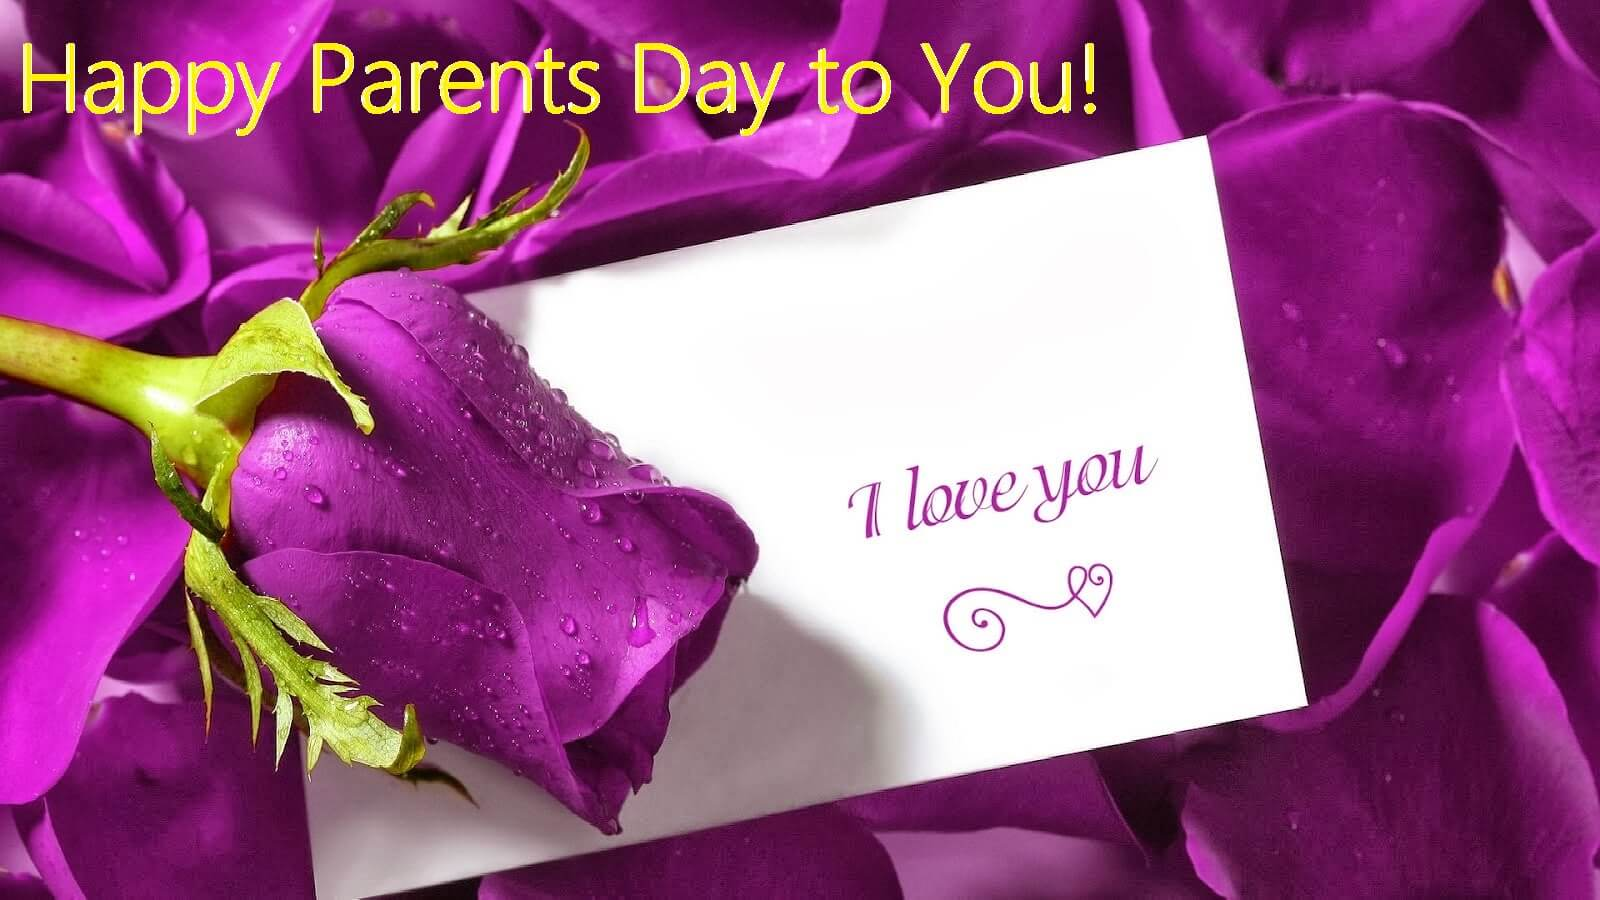 happy parents day wishes hd greetings rose